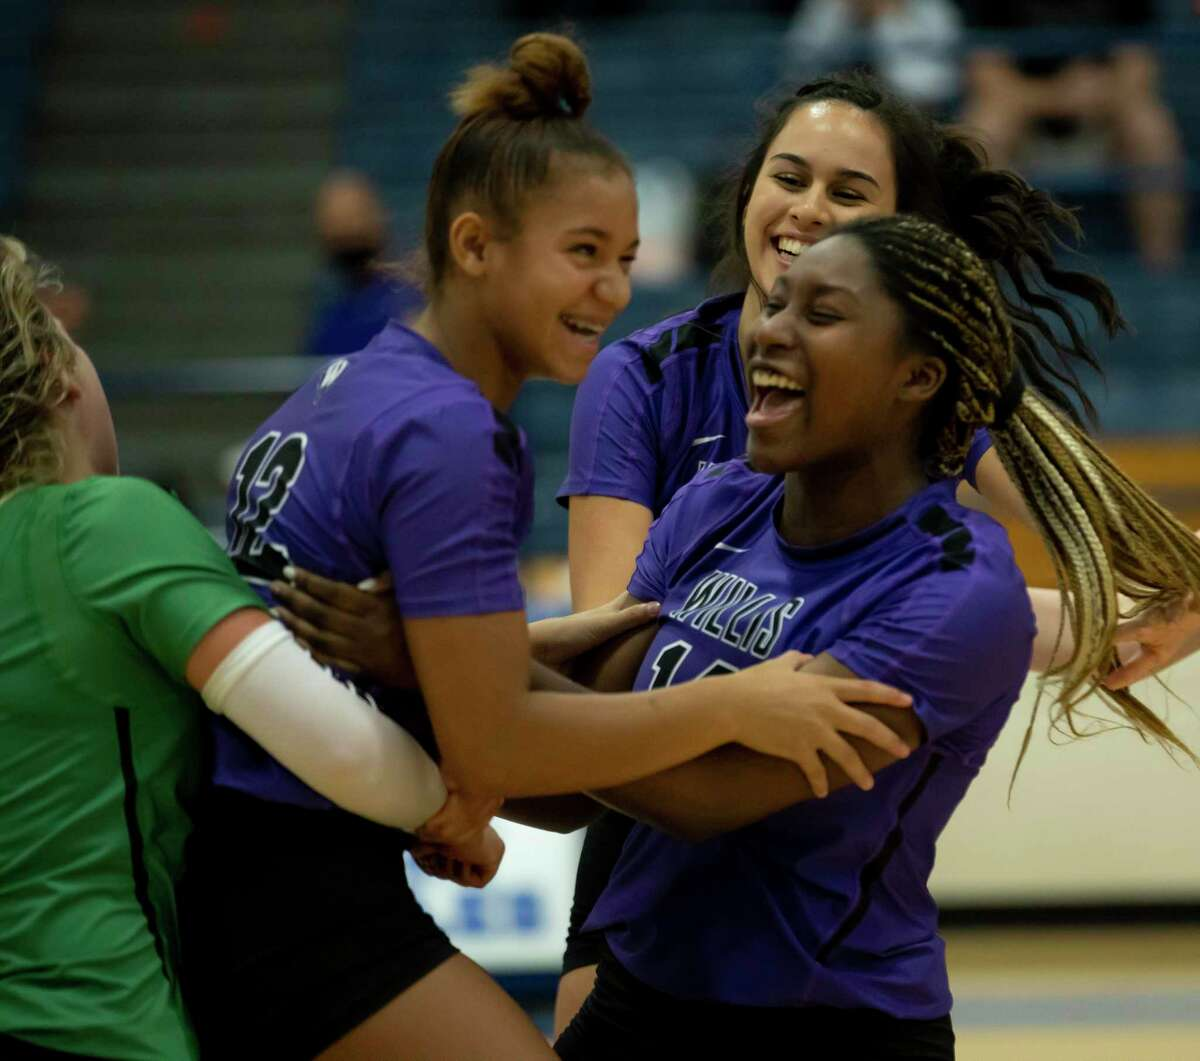 Willis freshman Secret Carroll (12) and Willis senior Keziah Smith (14) embrace one another after winning a non-district volleyball match at New Caney High School, Tuesday, Sept. 15, 2020.